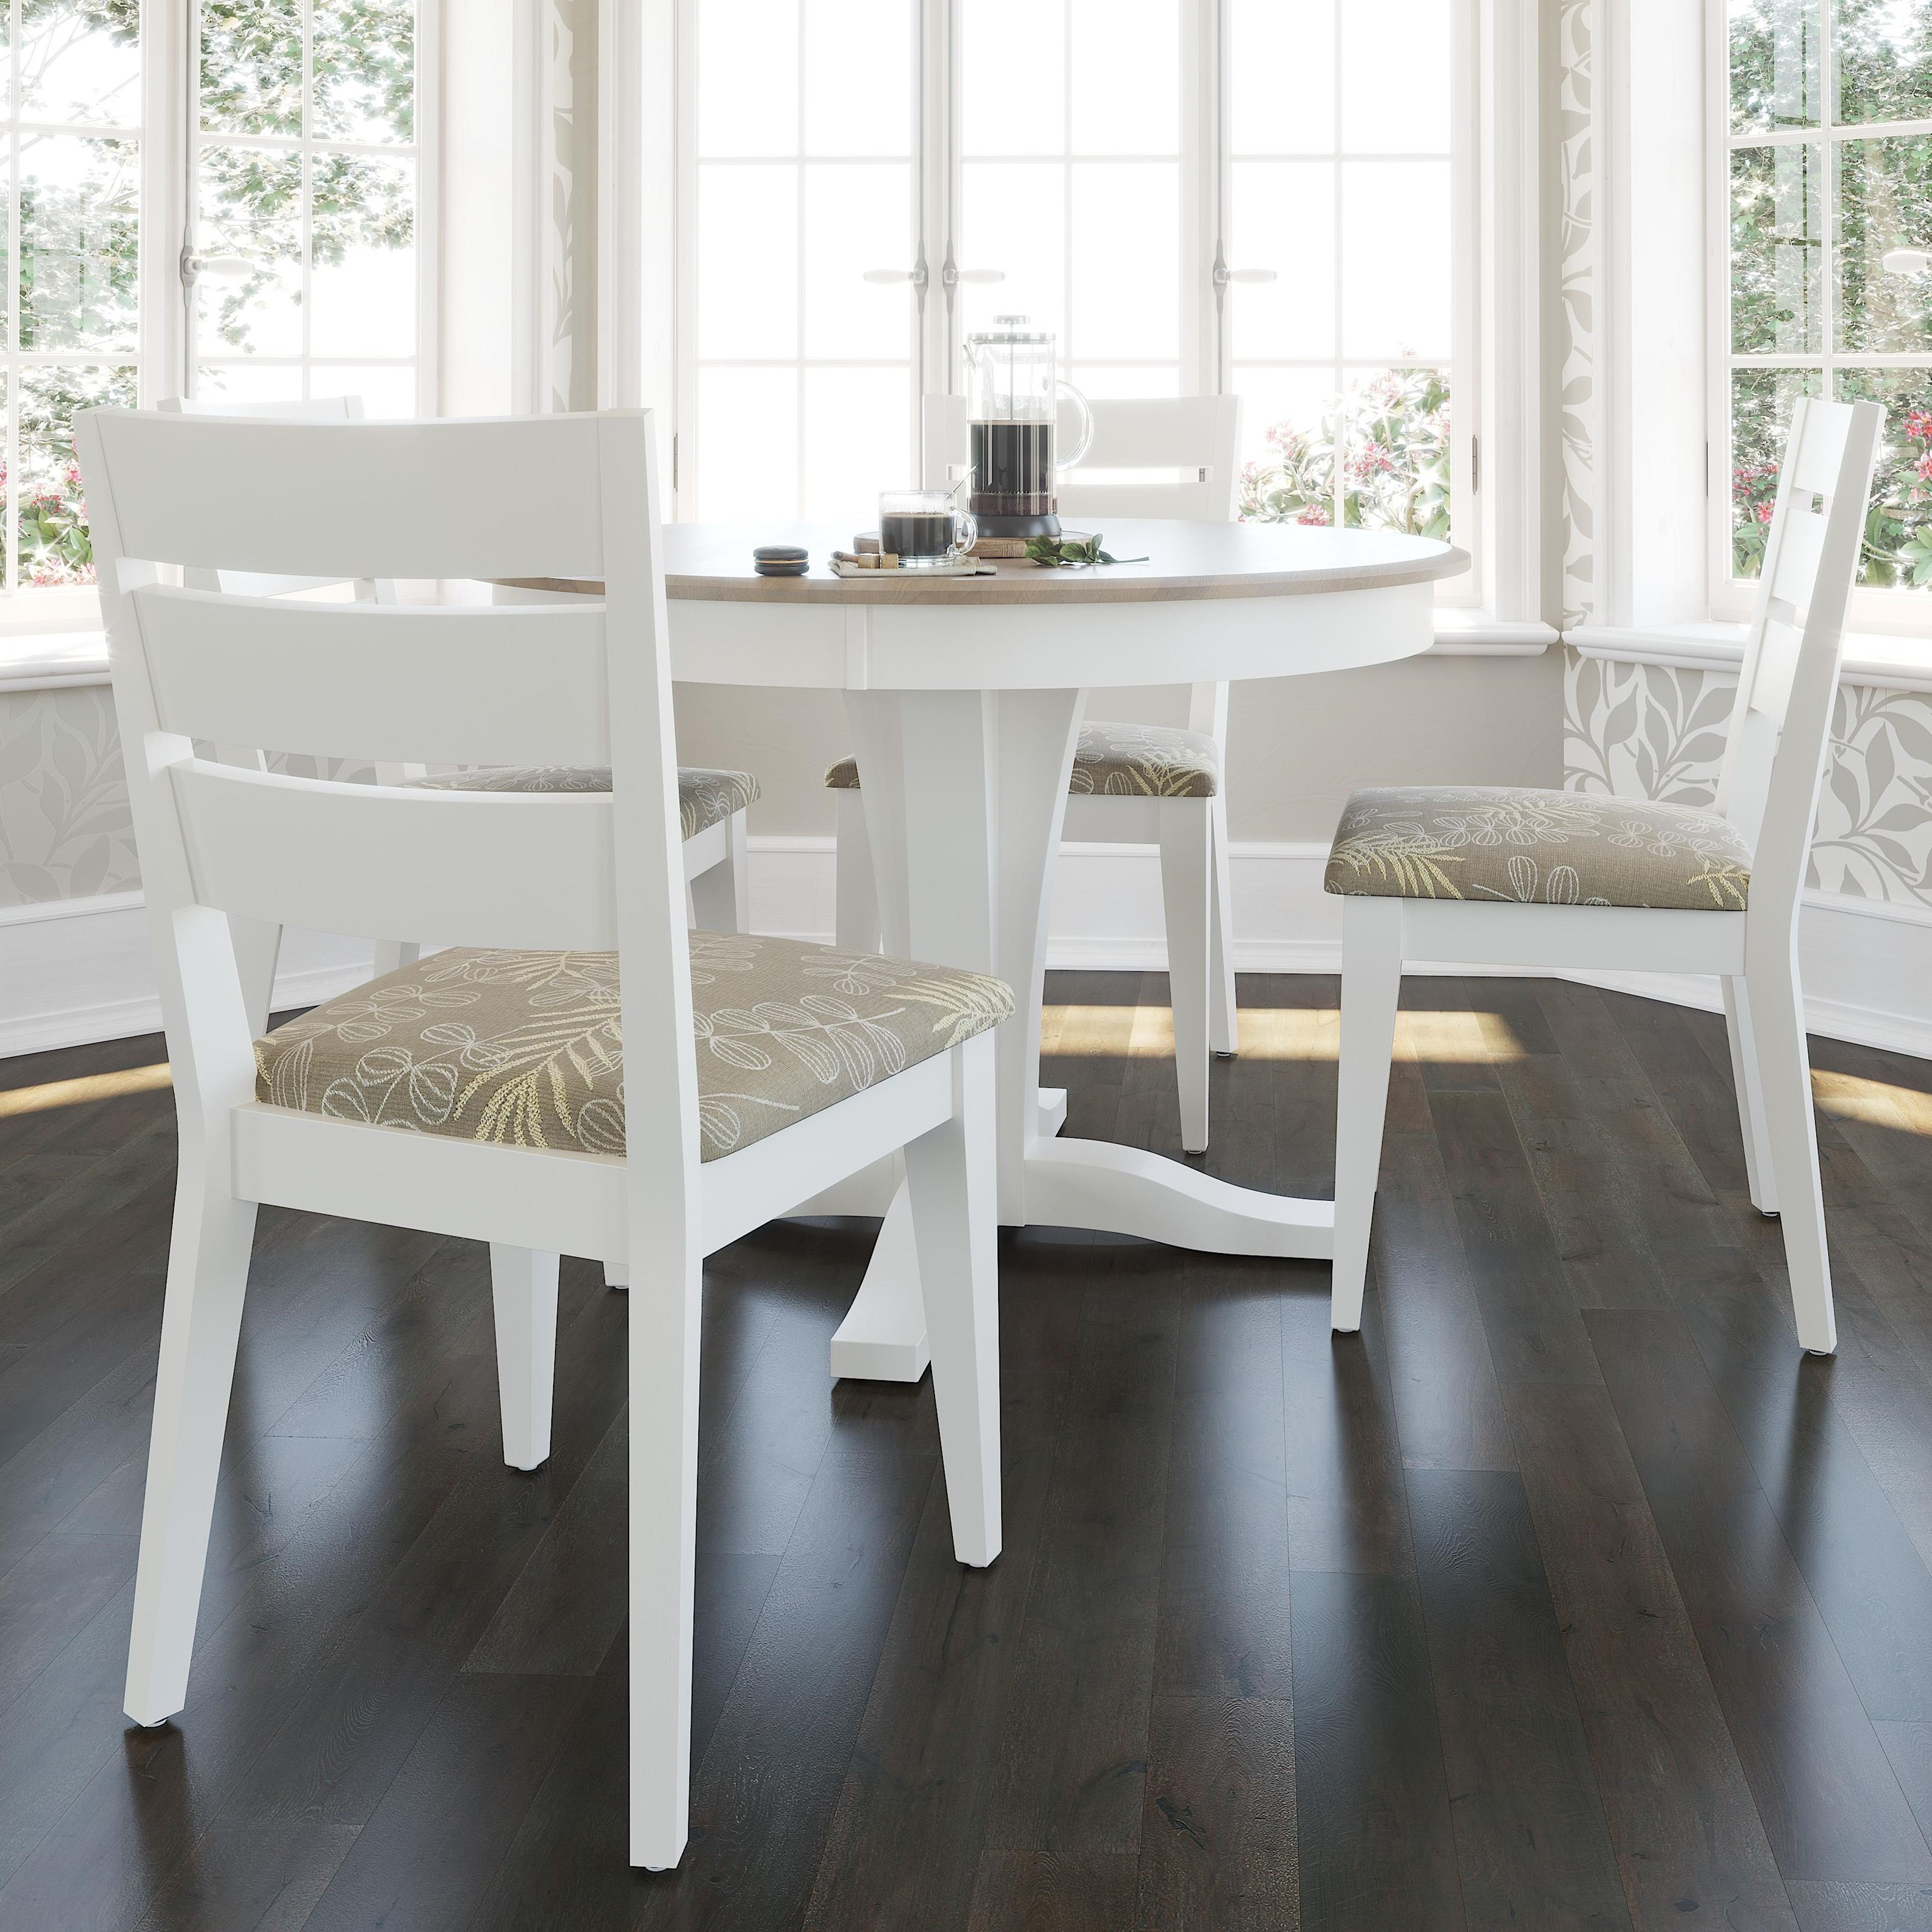 Gourmet - Custom Dining Customizable Round Table Set by Canadel at Dinette Depot